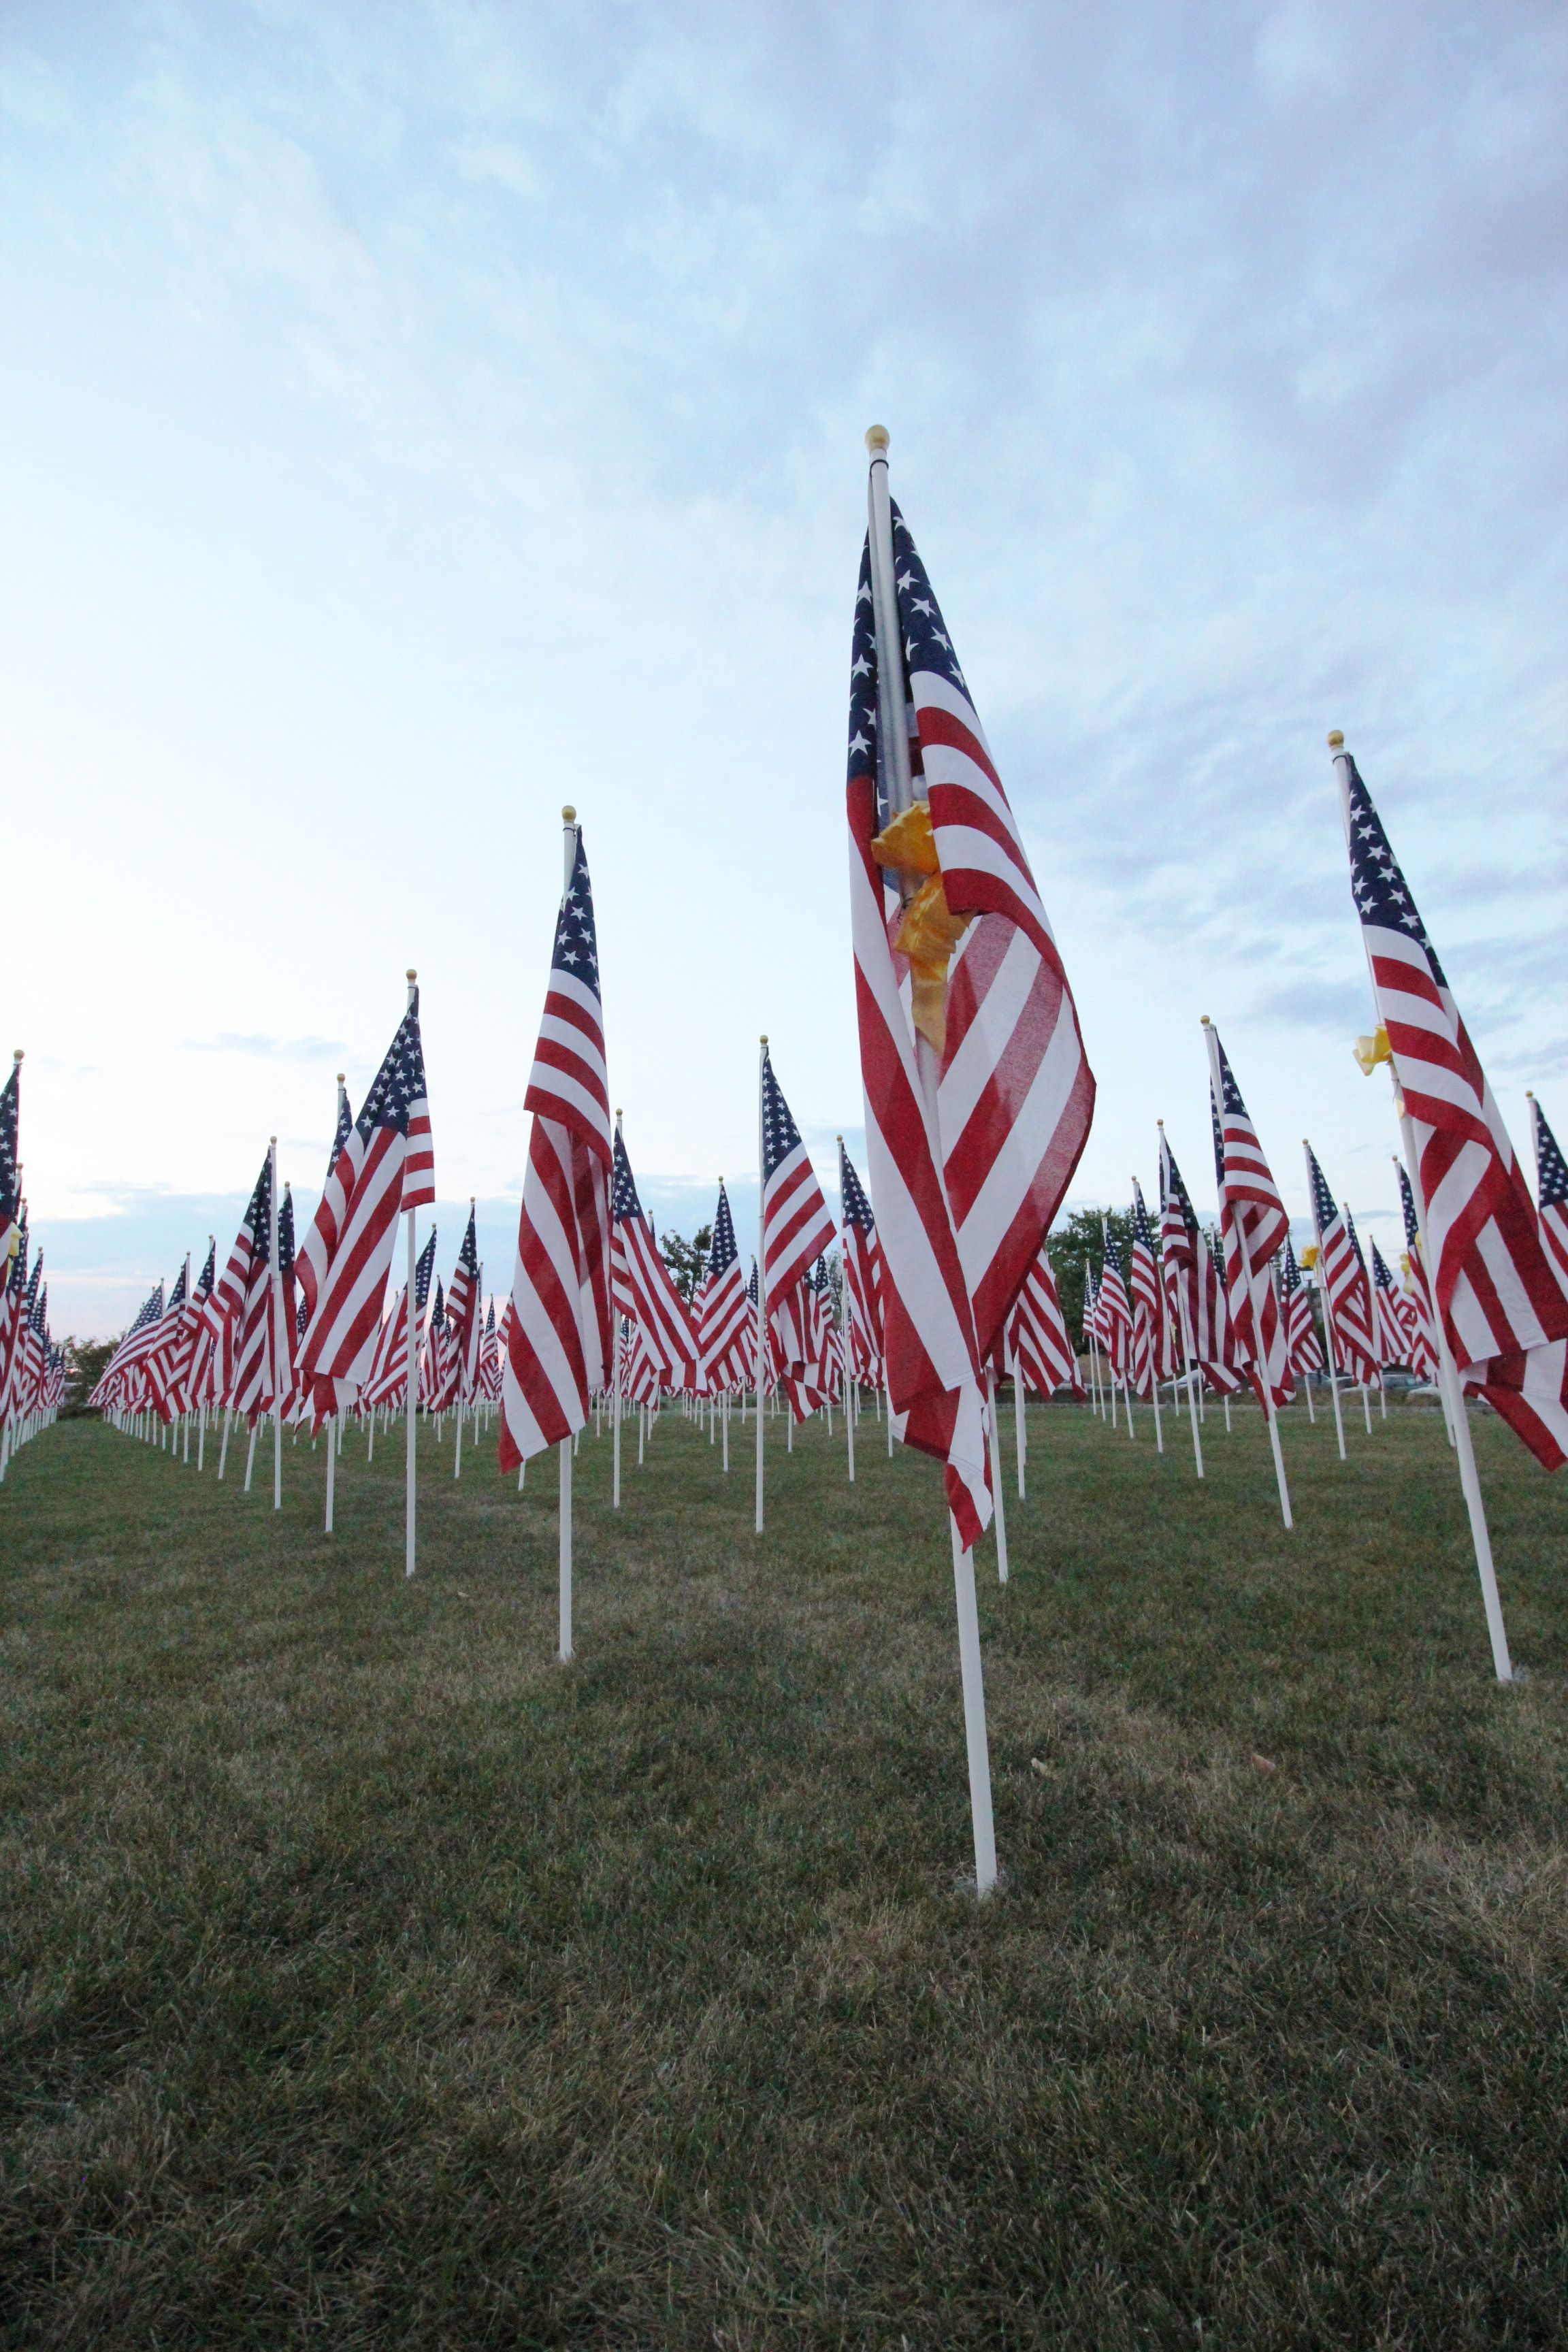 Muncie Exchange Club Puts Up Thousands Of Flags Each Year To Remember Those Who Have Served And Passed For More Photos Follow The Link Flag Muncie Old Glory